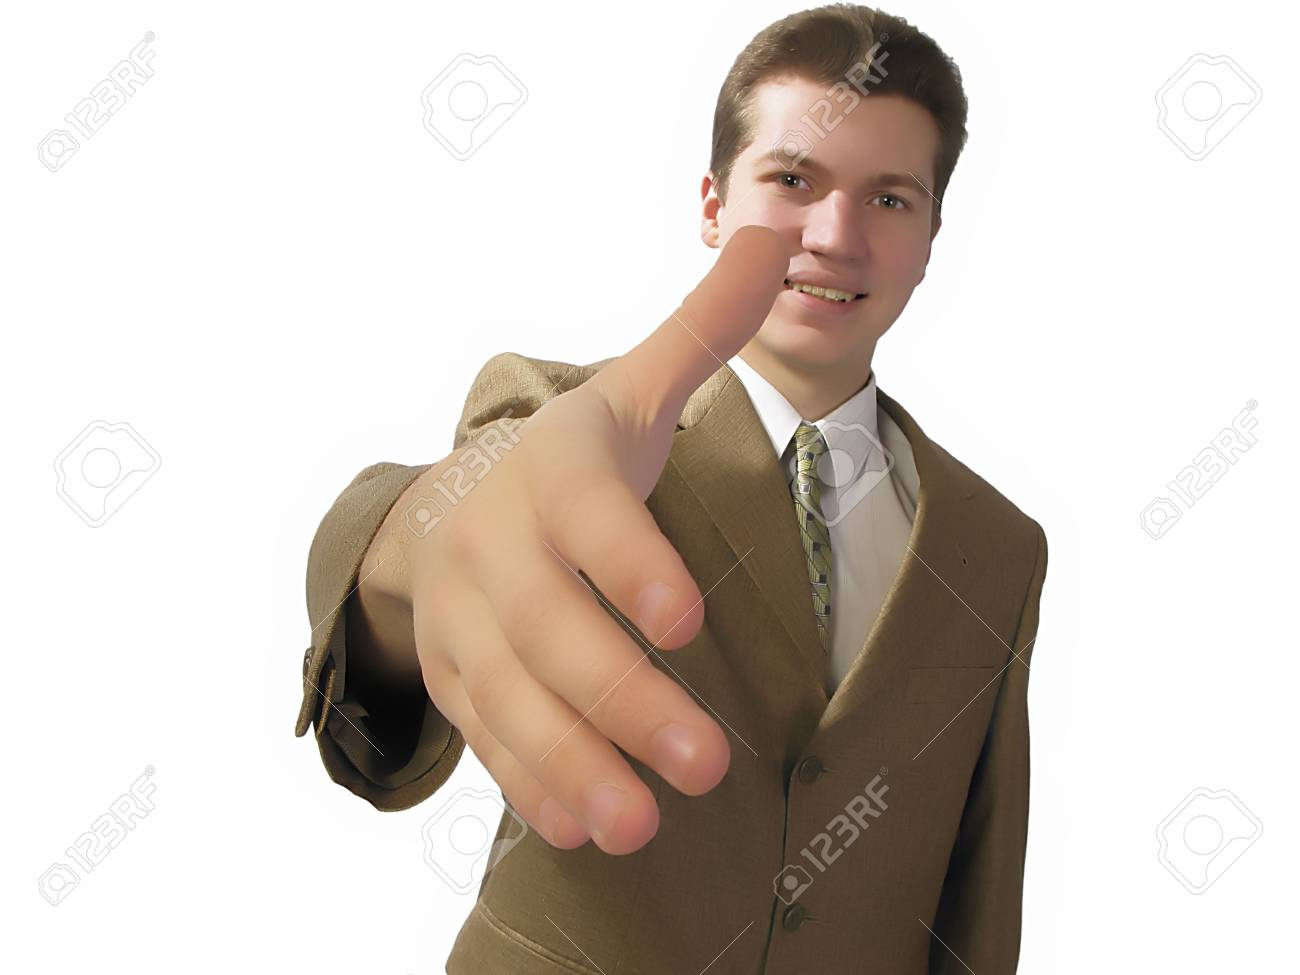 businessman welcomes  hand on  blue background,  close up Stock Photo - 2943205